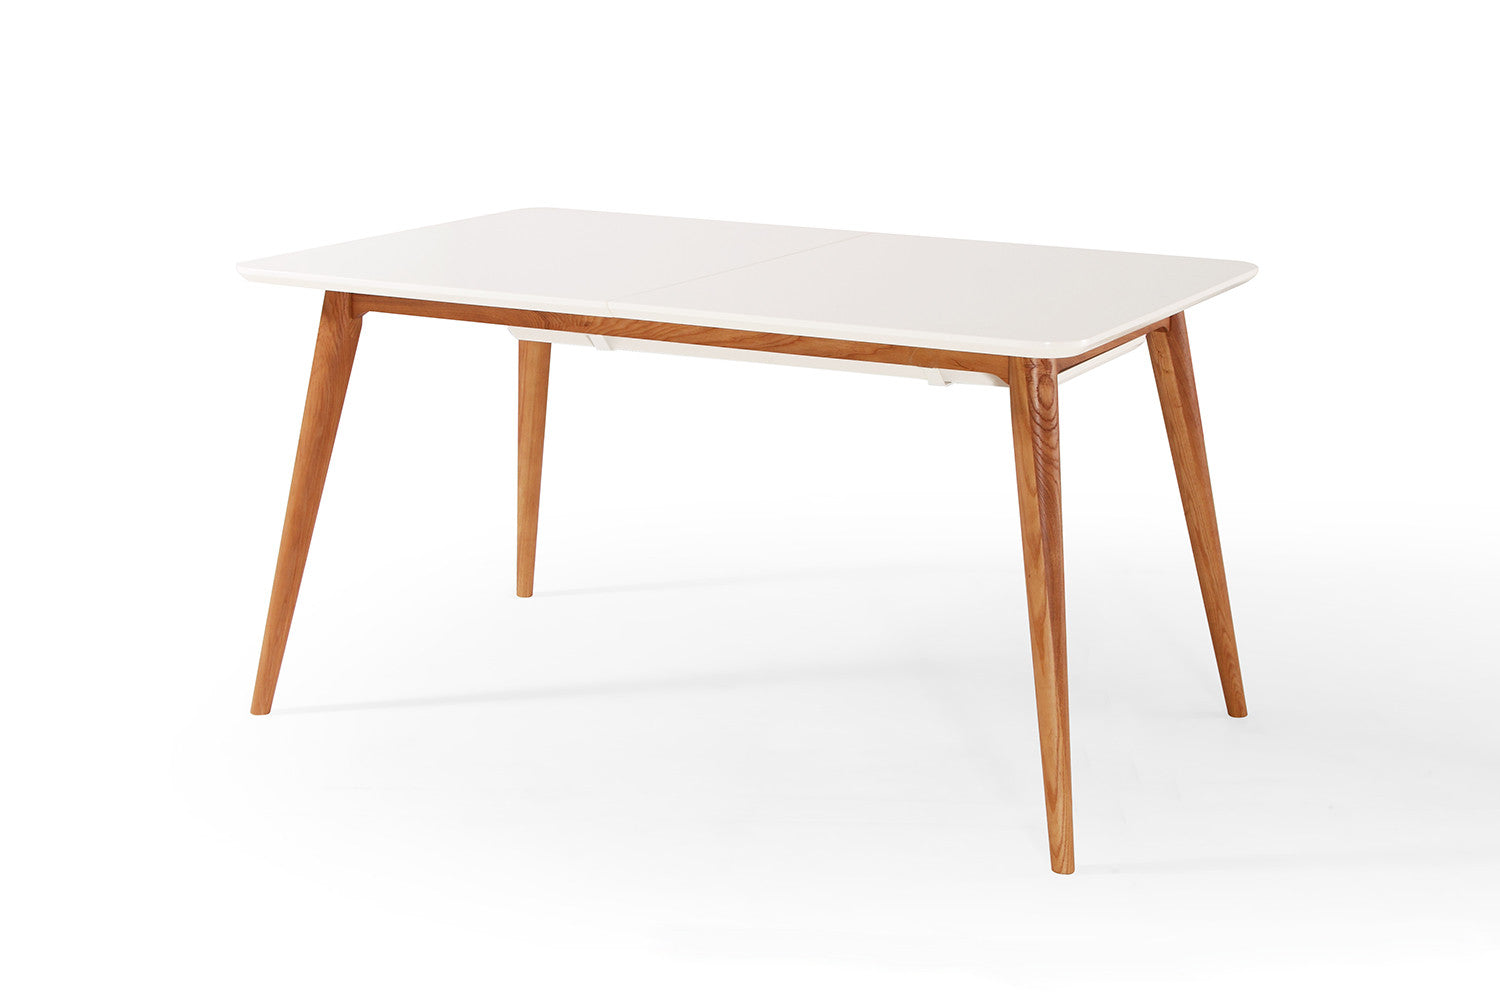 Table de salle manger extensible scandinave wyna dewarens Table a manger rectangulaire extensible